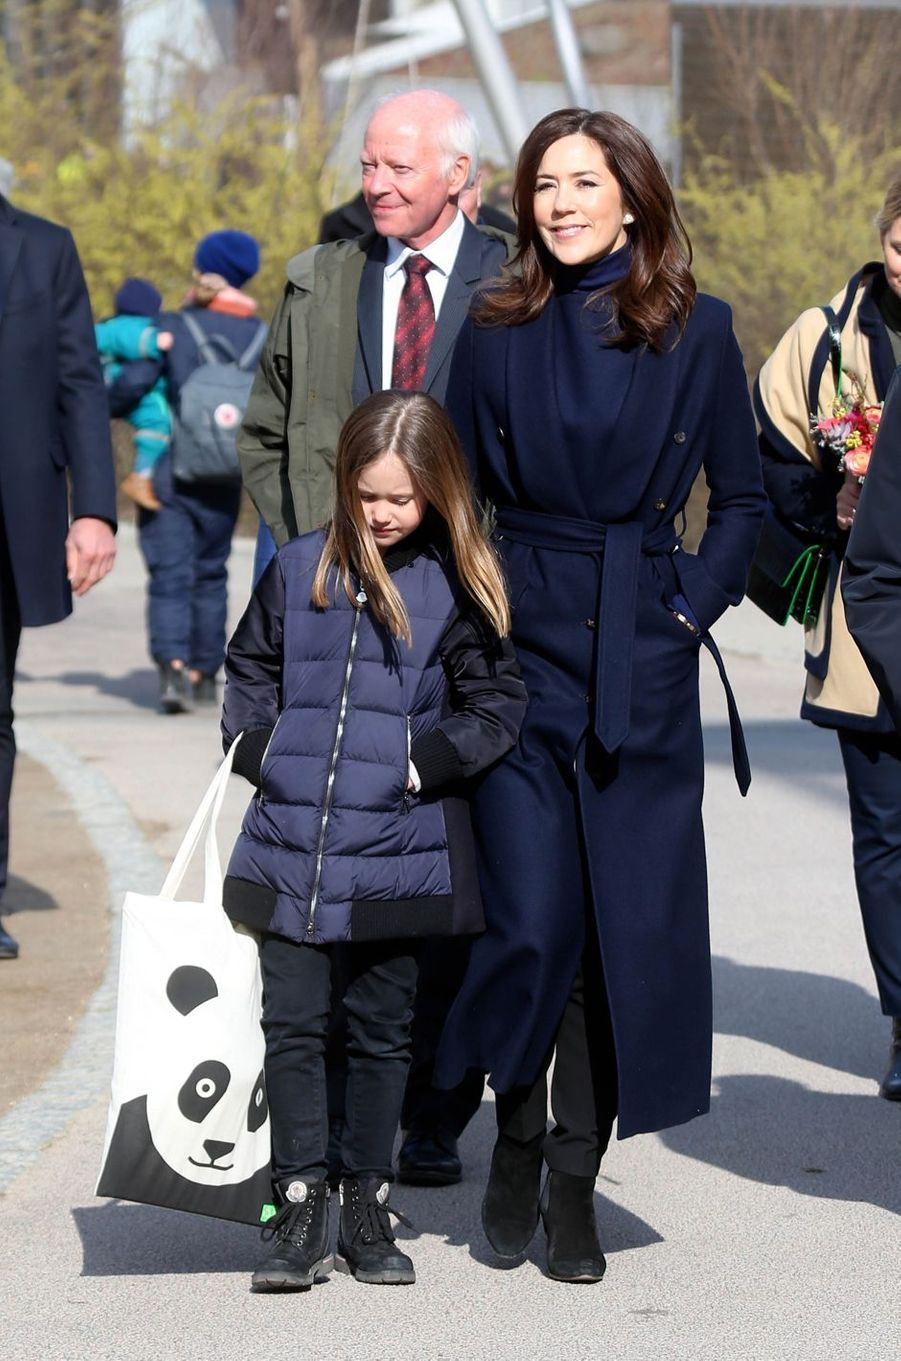 Les princesses Mary et Josephine de Danemark, à Copenhague le 11 avril 2019